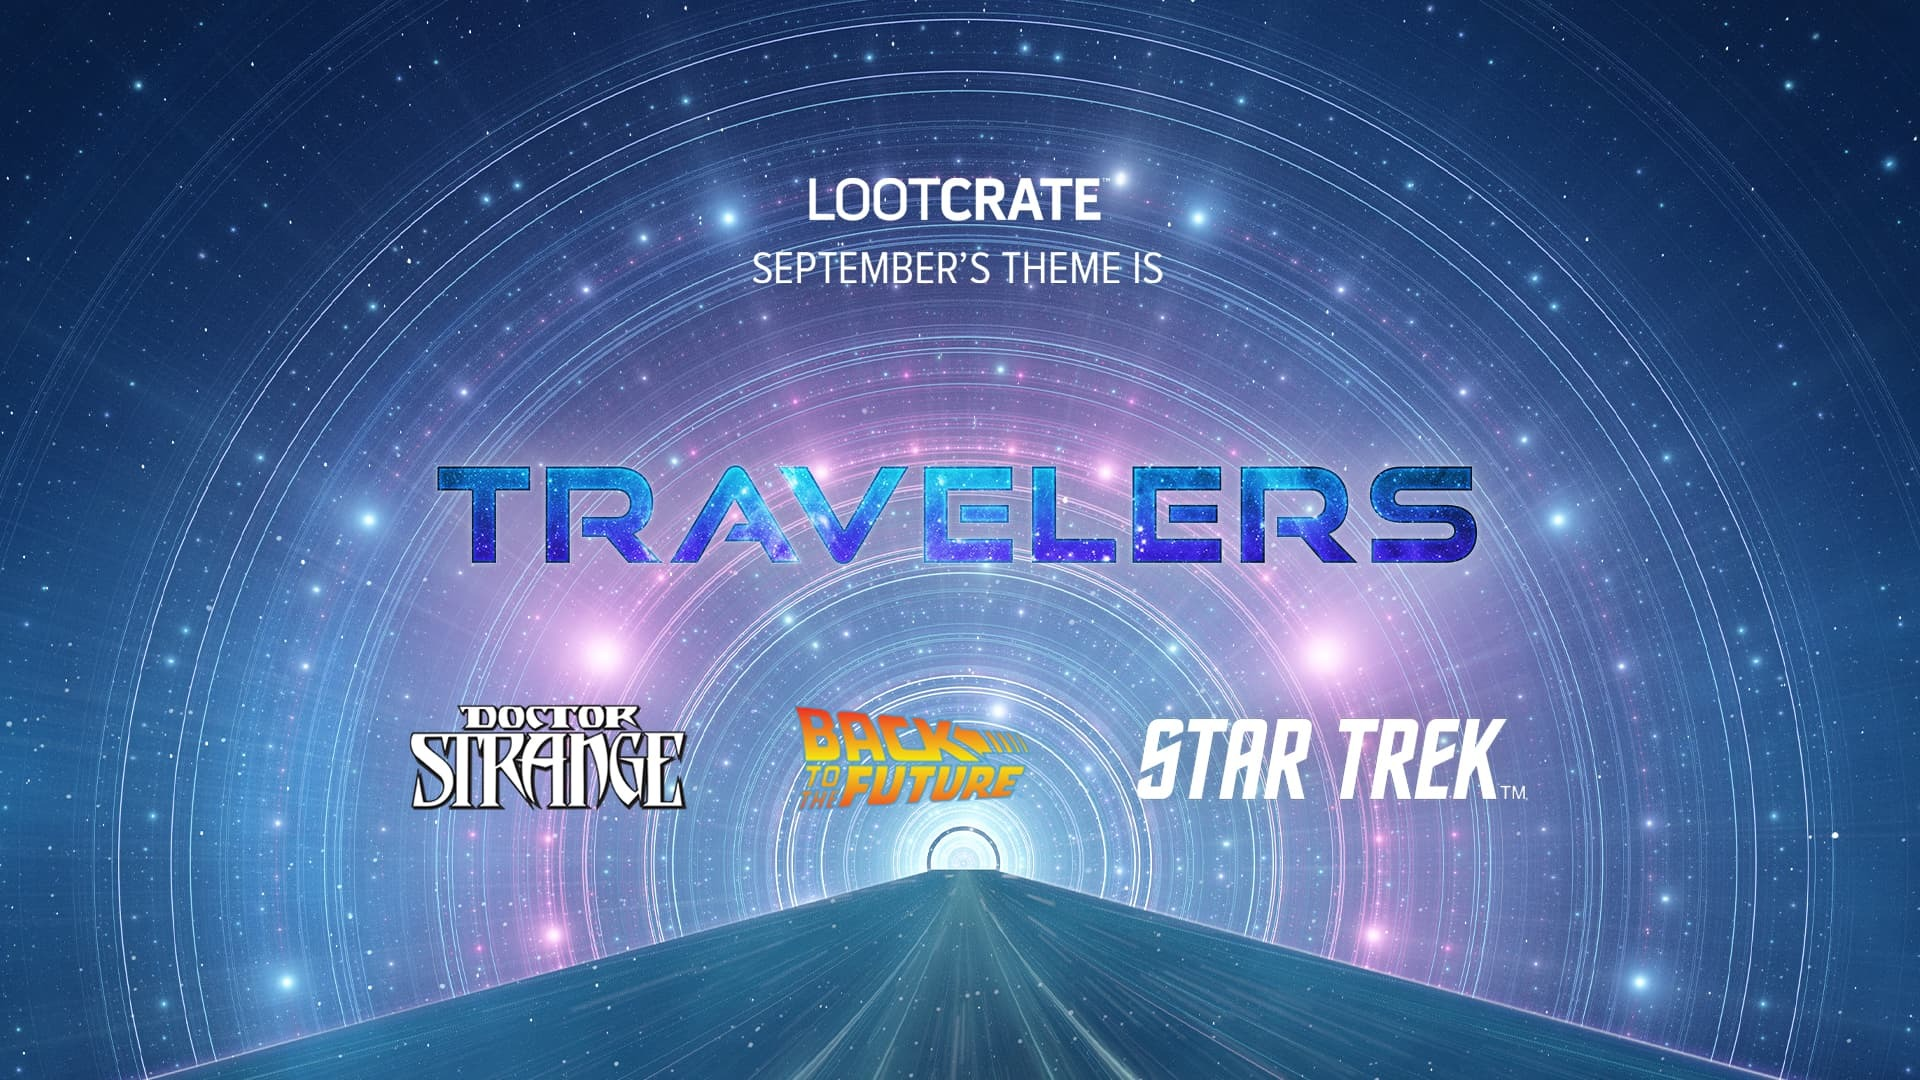 Celebrate Pop Culture Travelers with the September Loot Crate!